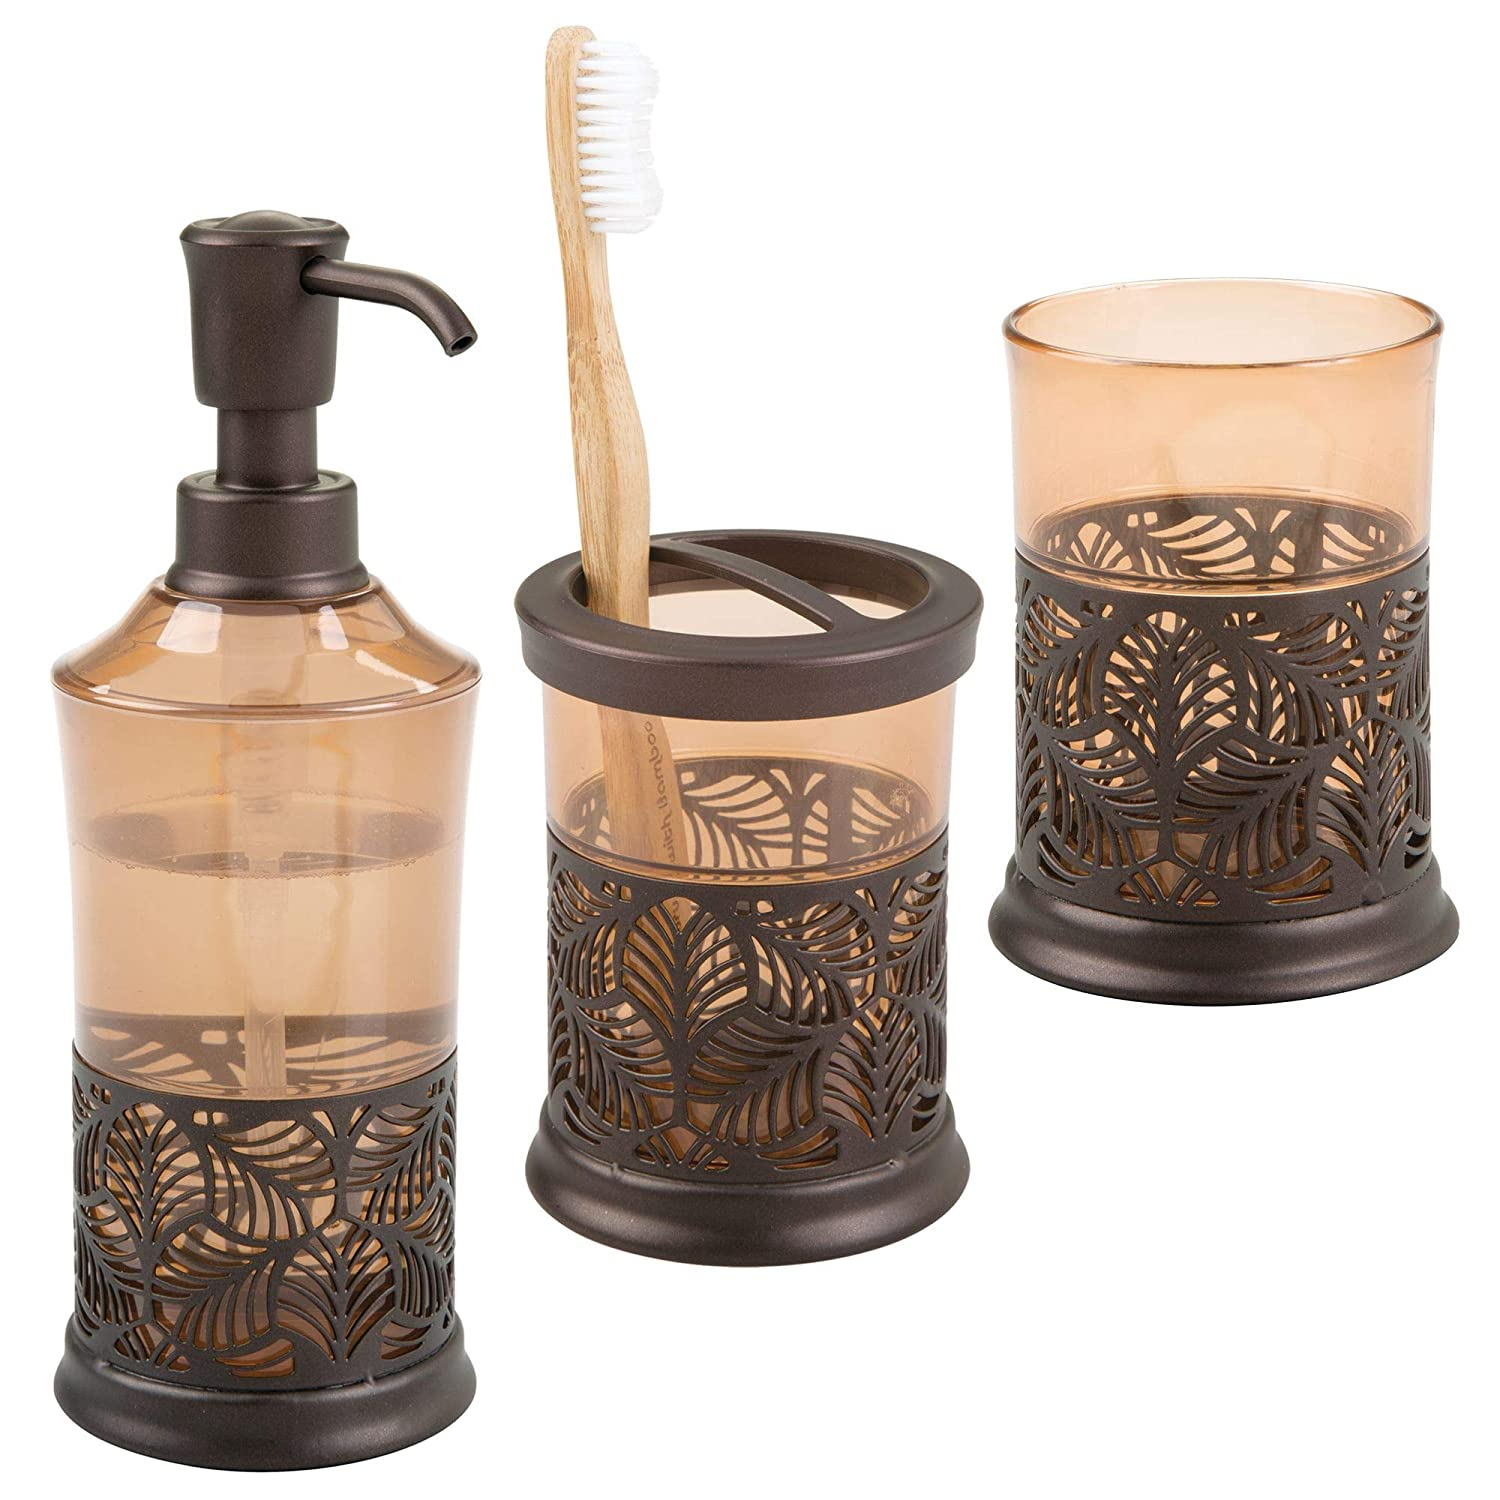 mDesign Decorative Bath Accessory Set with Leaf Design for Bathroom Vanity Countertops and Sinks, Includes Hand Soap Dispenser, Toothbrush Holder and Tumbler - Set of 3 - Clear/Brushed MetroDecor